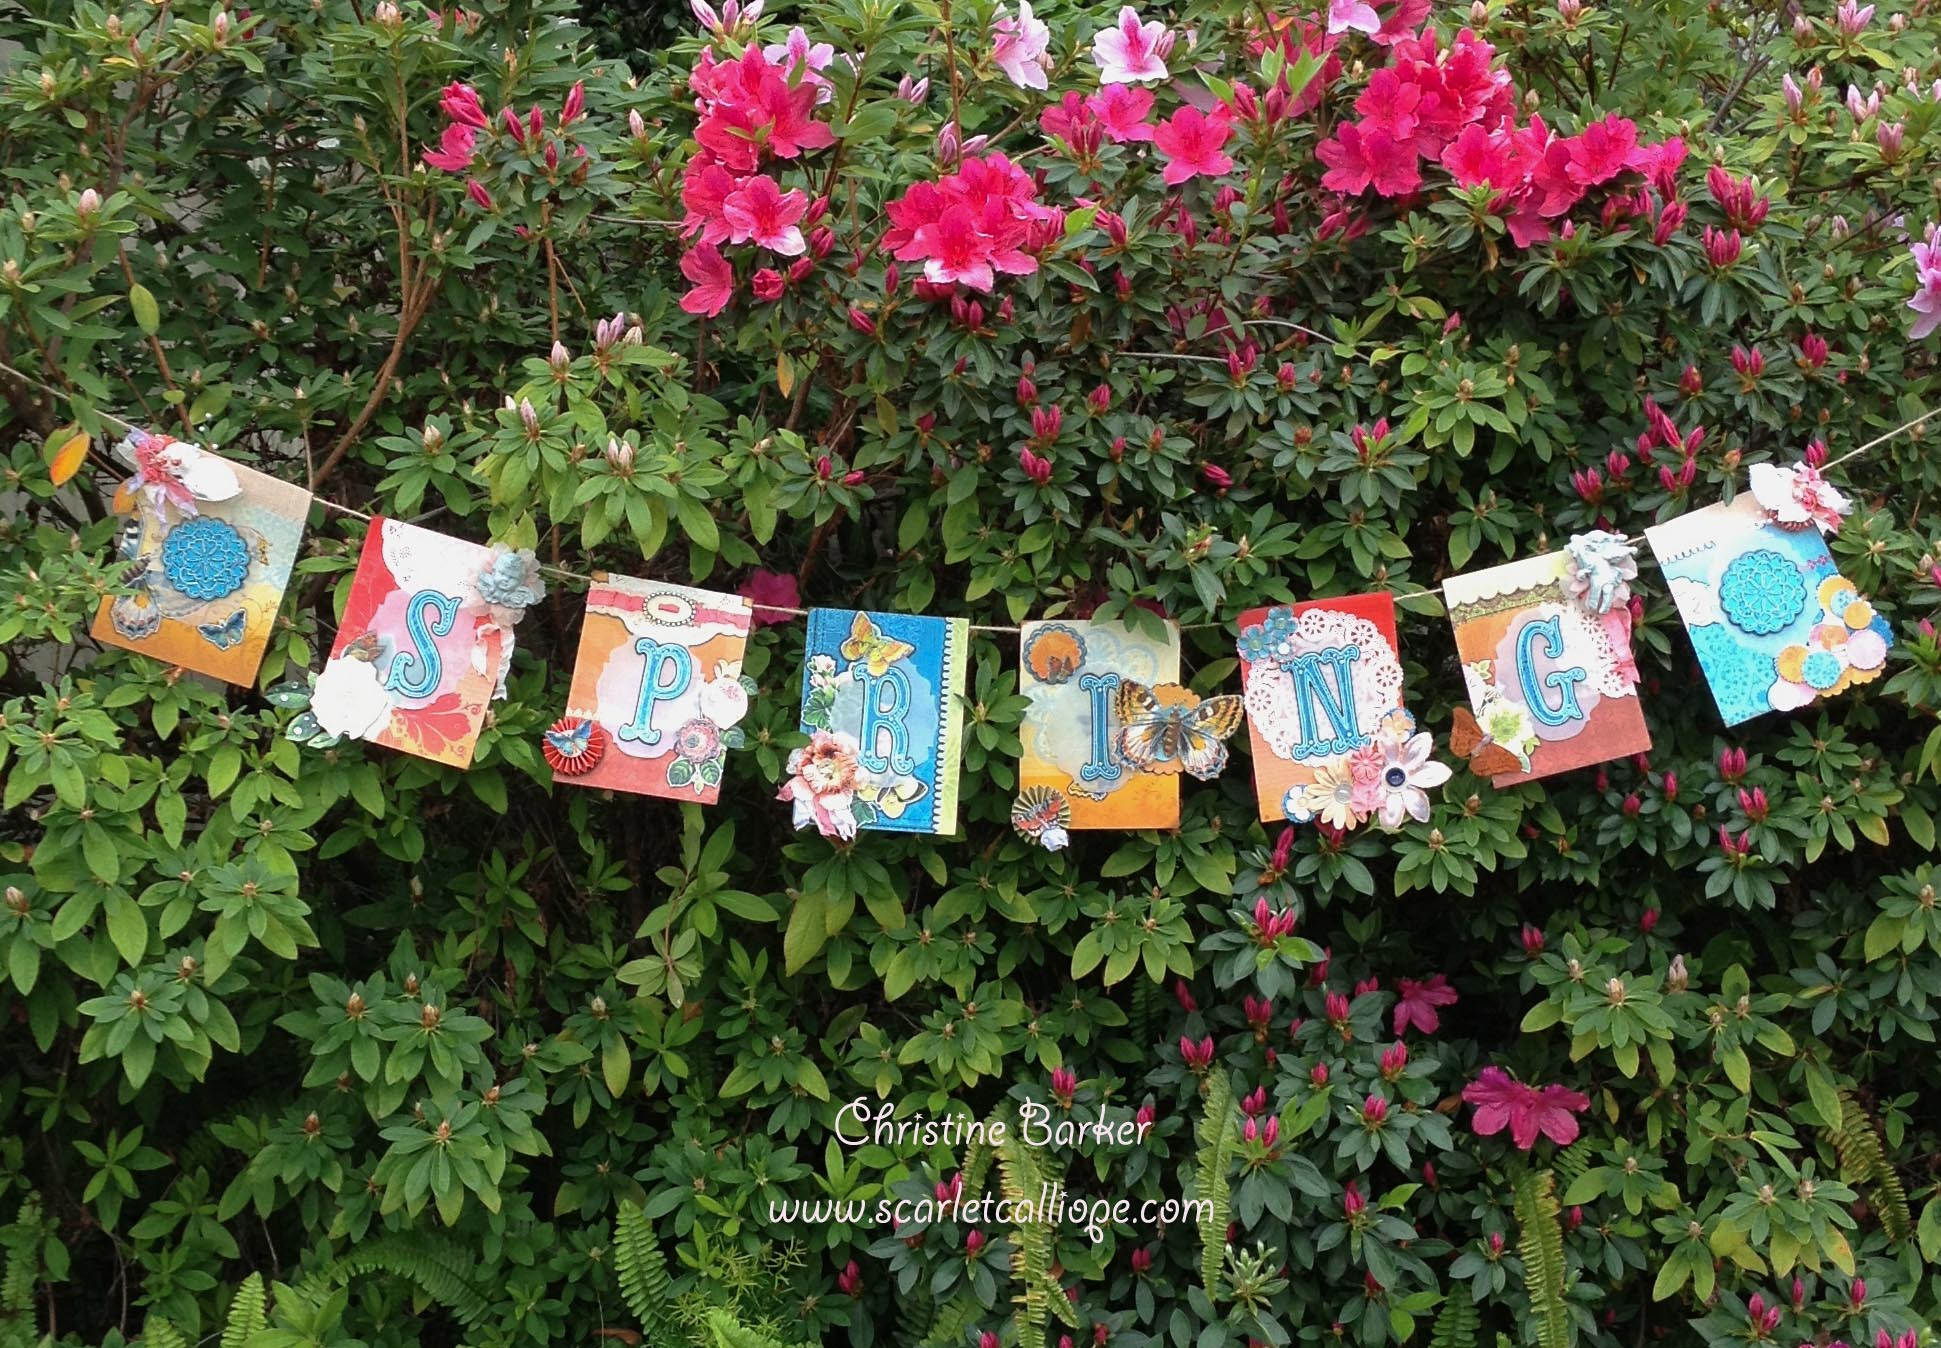 Scarlet Calliope Spring Banner made by Christine Barker